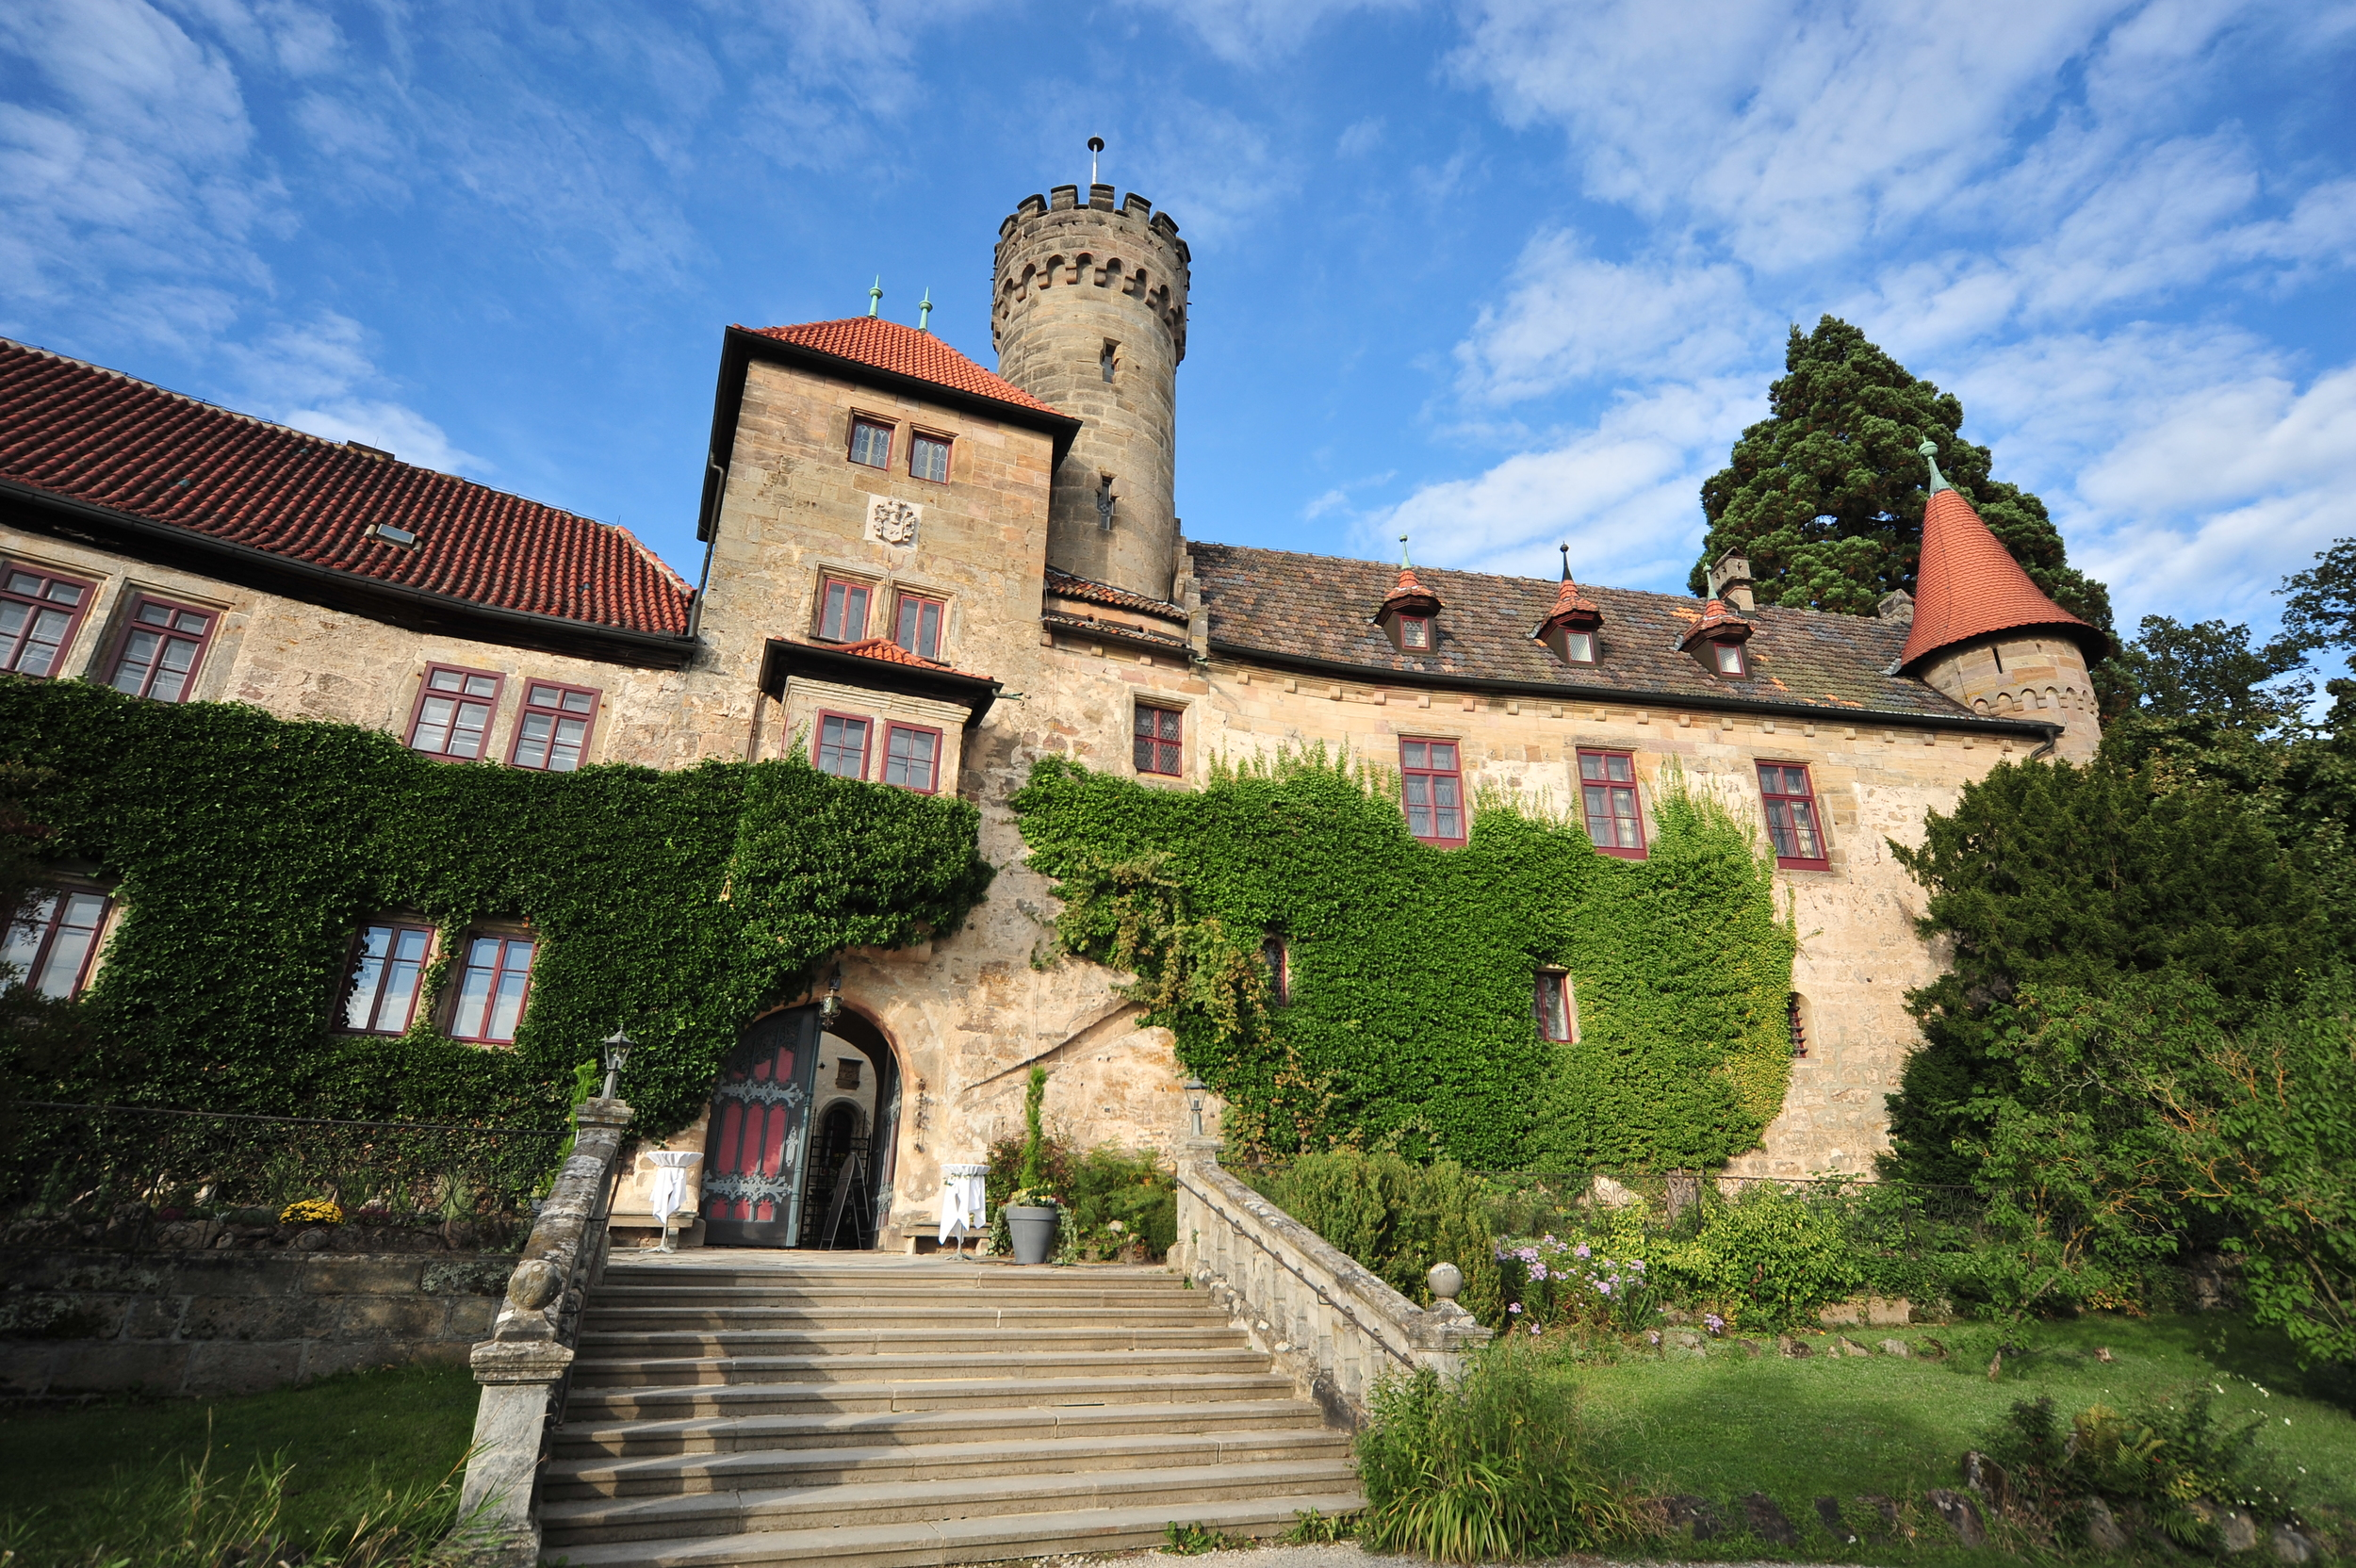 GERMANY   a Western European country with a terrain of vast forests, rivers and mountain ranges If you are looking for an impressive wedding Germany would be a perfect choice with its numerous castles and magnificent scenery.